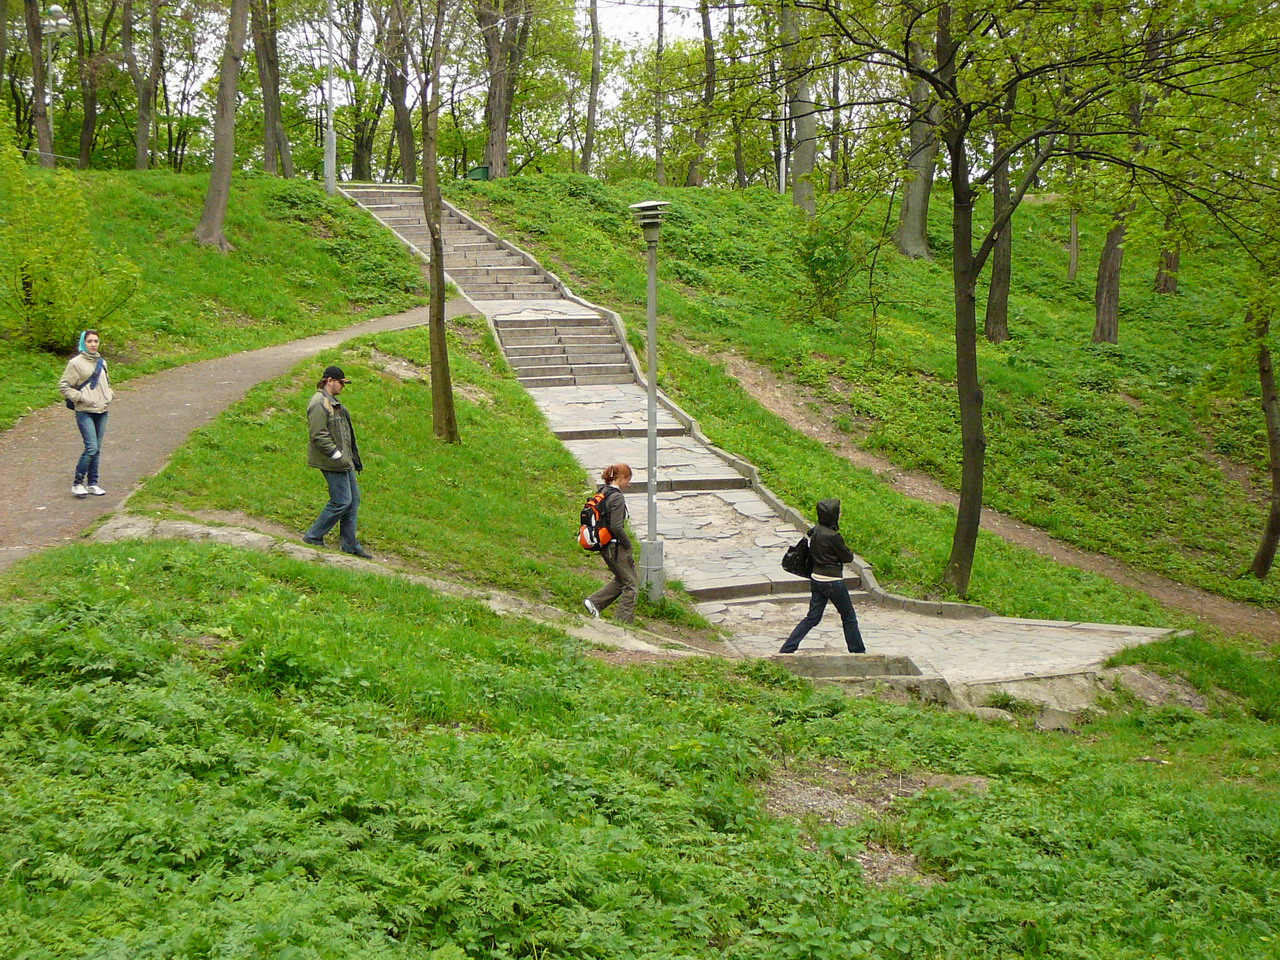 Open air trips in nature are popular among Ukrainians